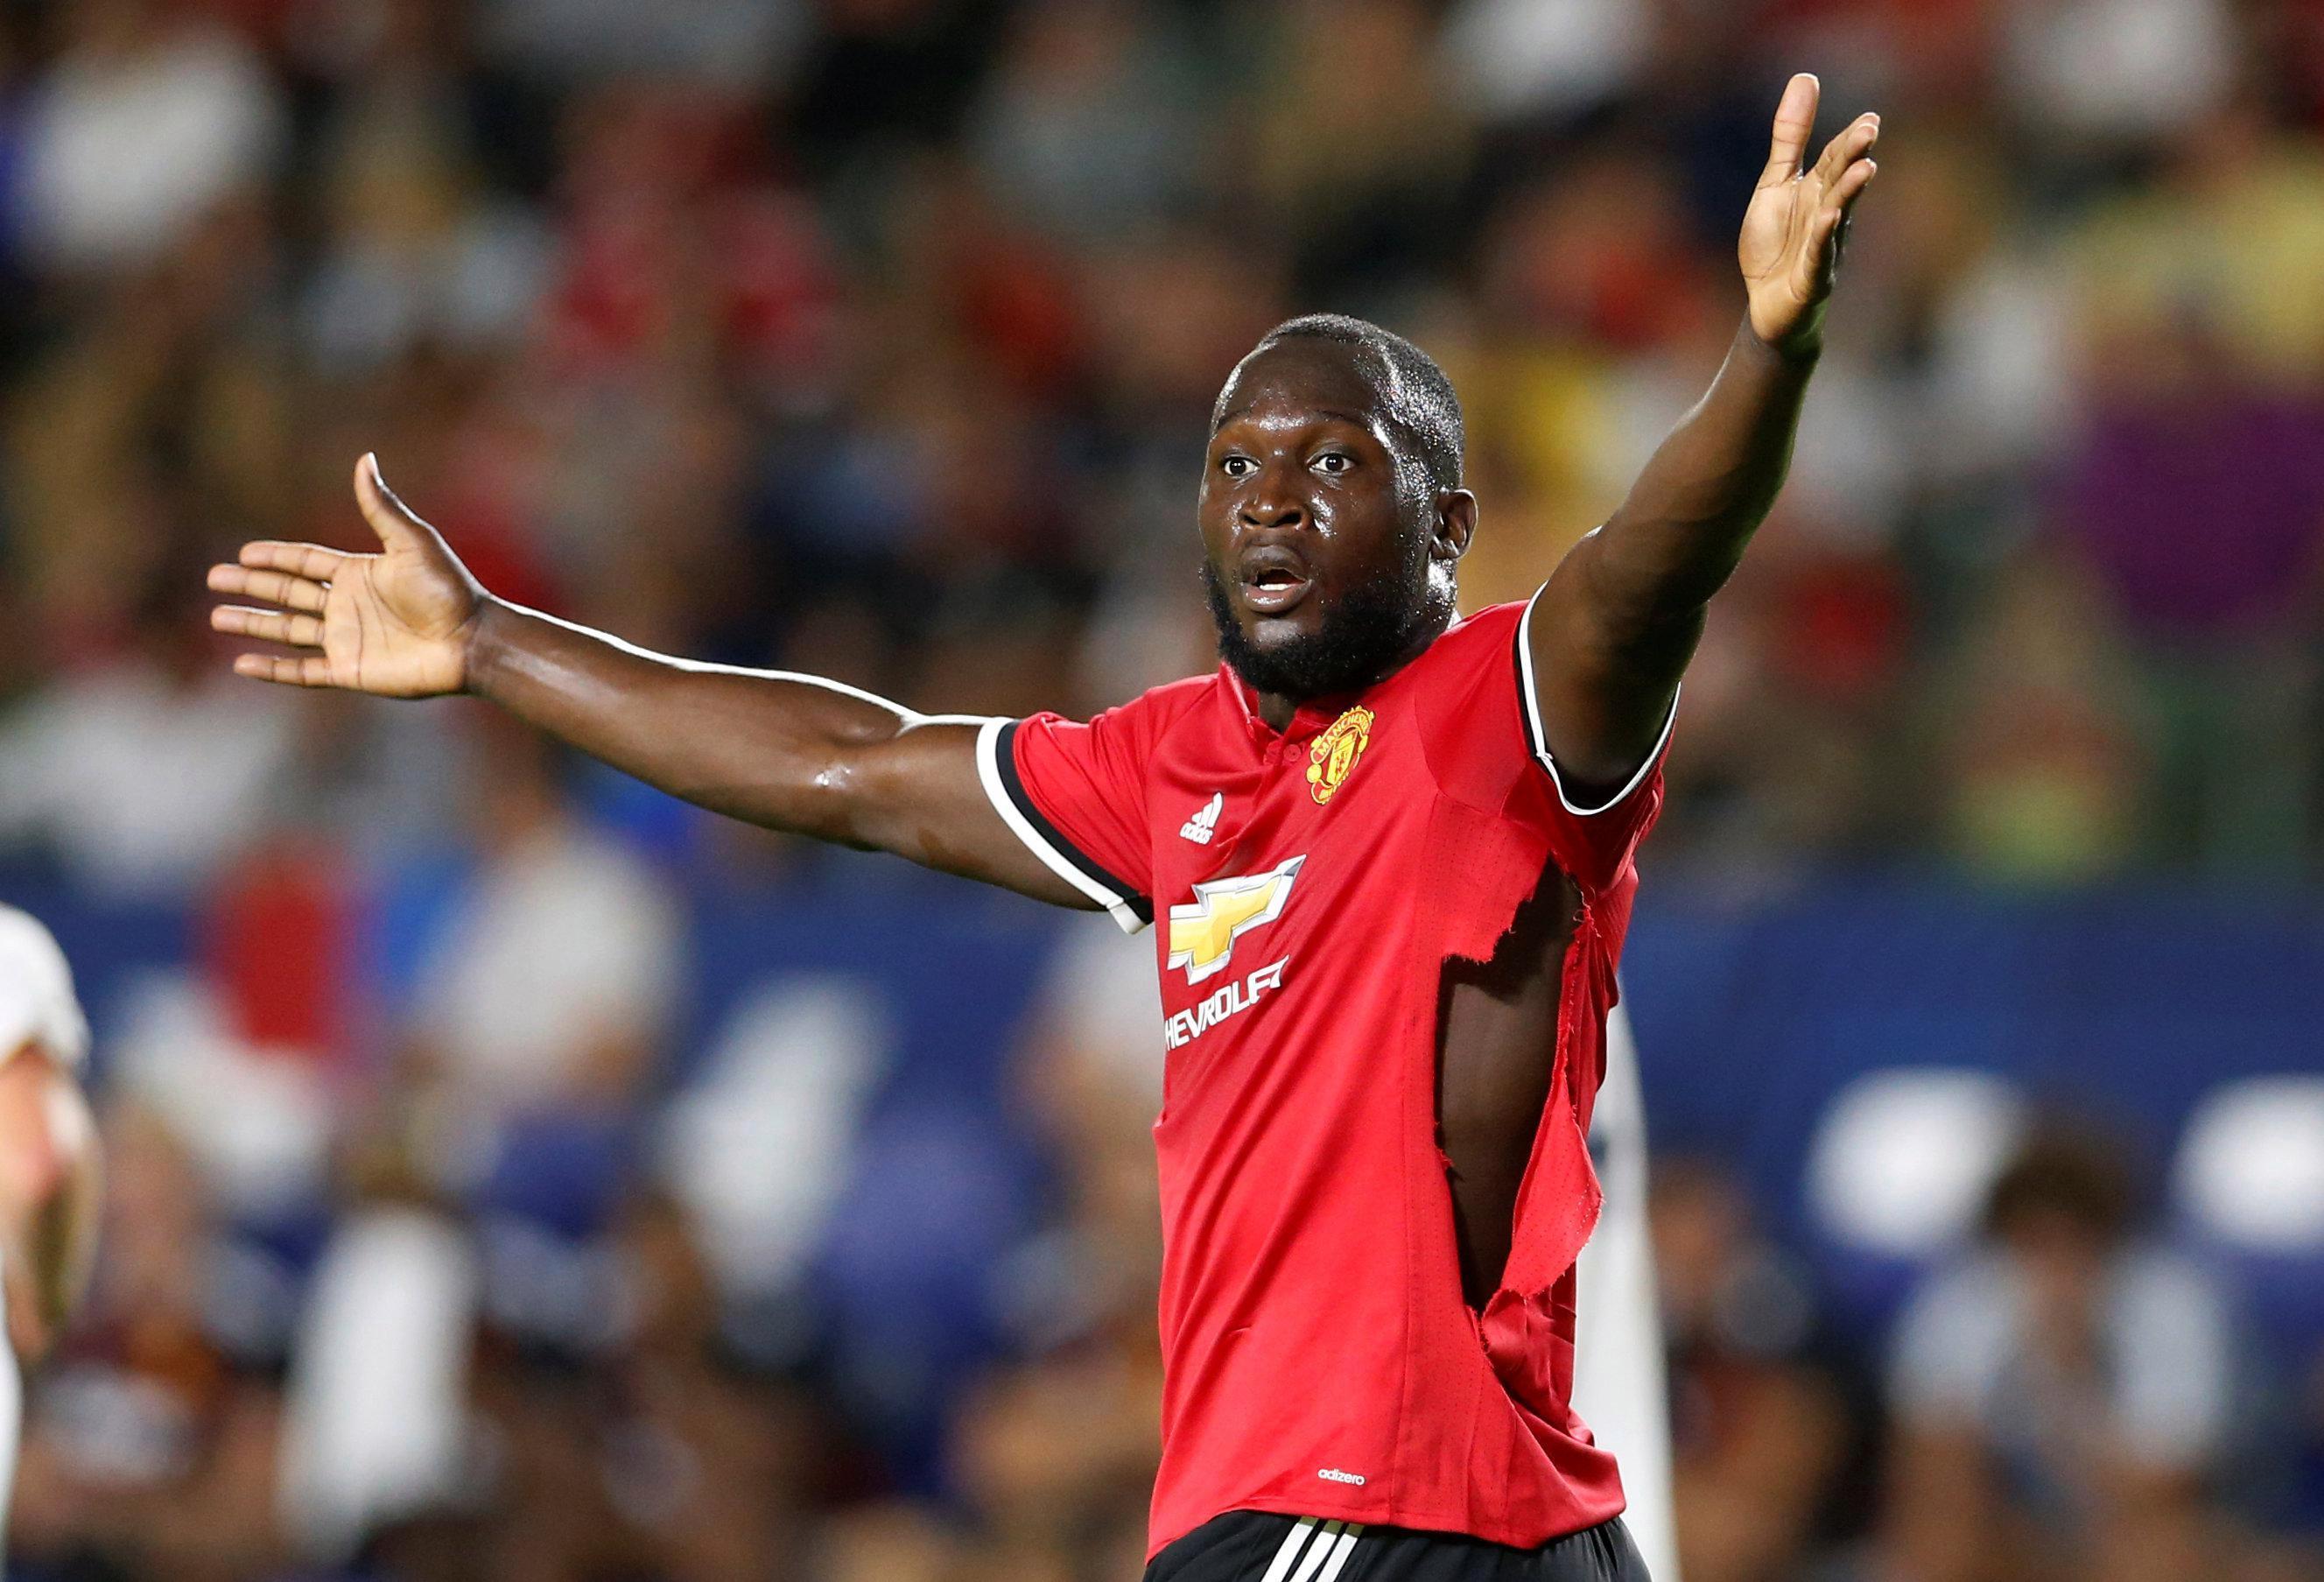 Lukaku is already off the mark as a Manchester United player